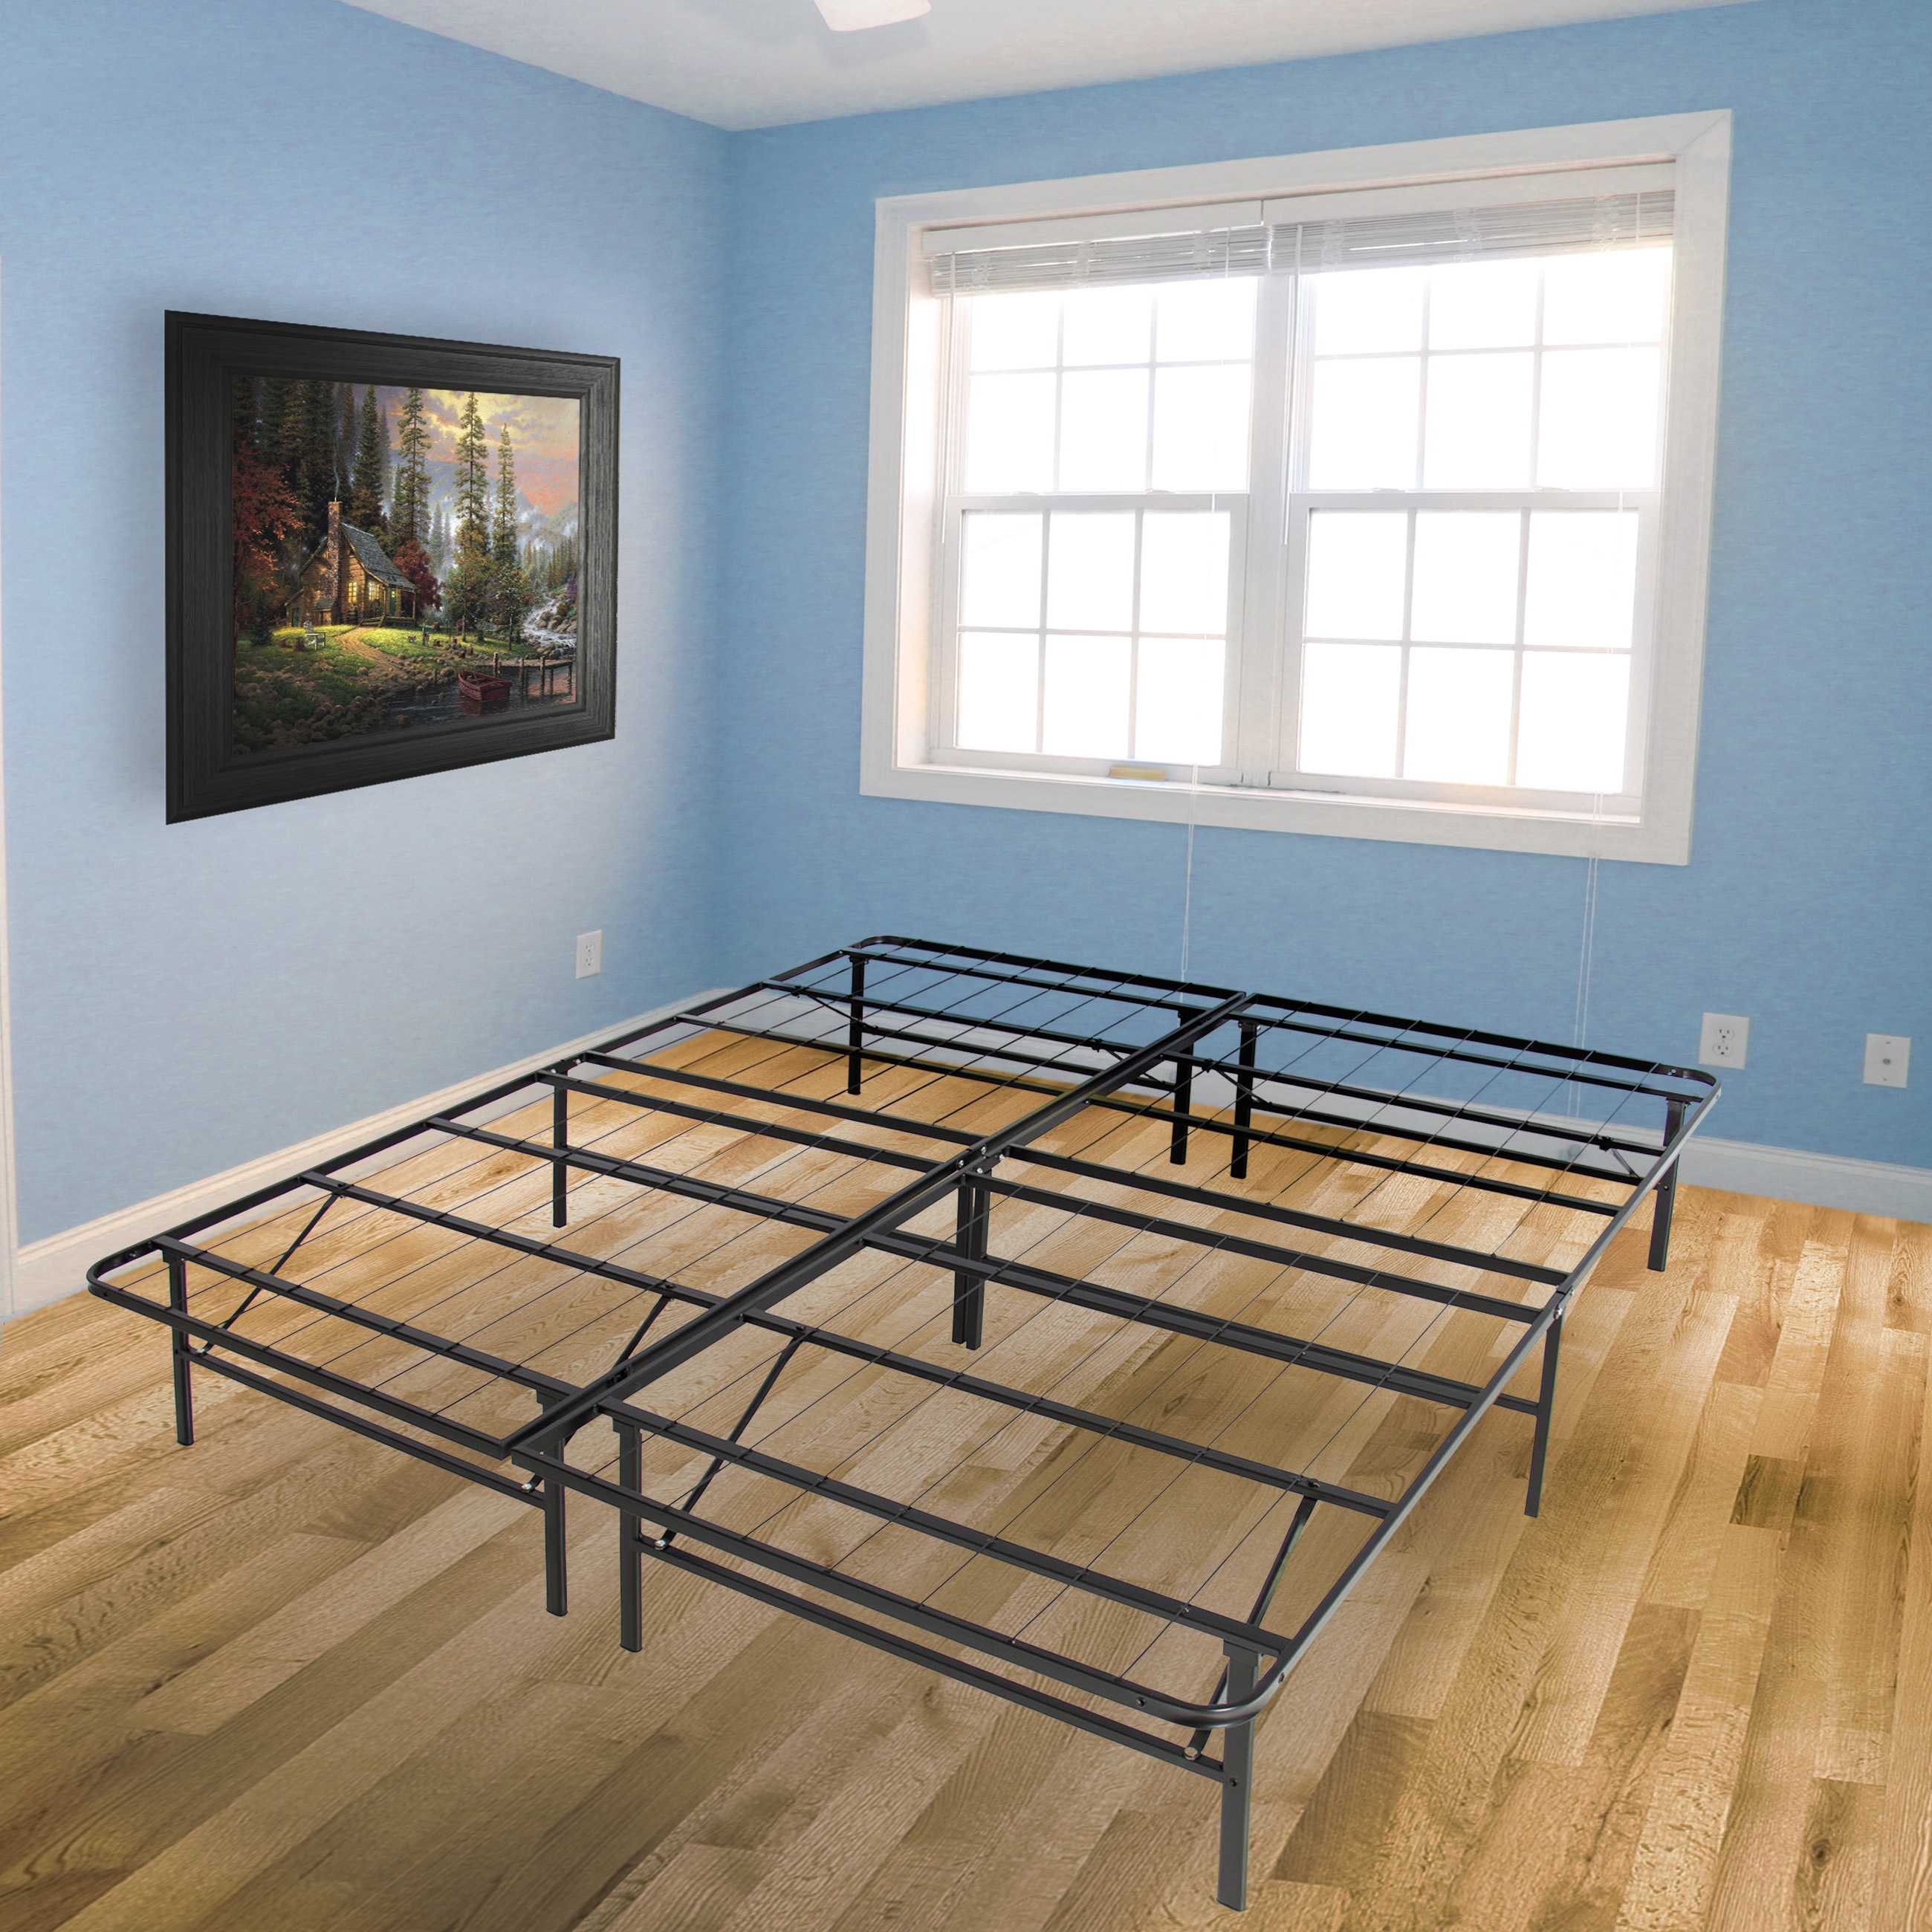 best choice products platform metal bed frame foldable no box spring needed mattress foundation queen walmart com